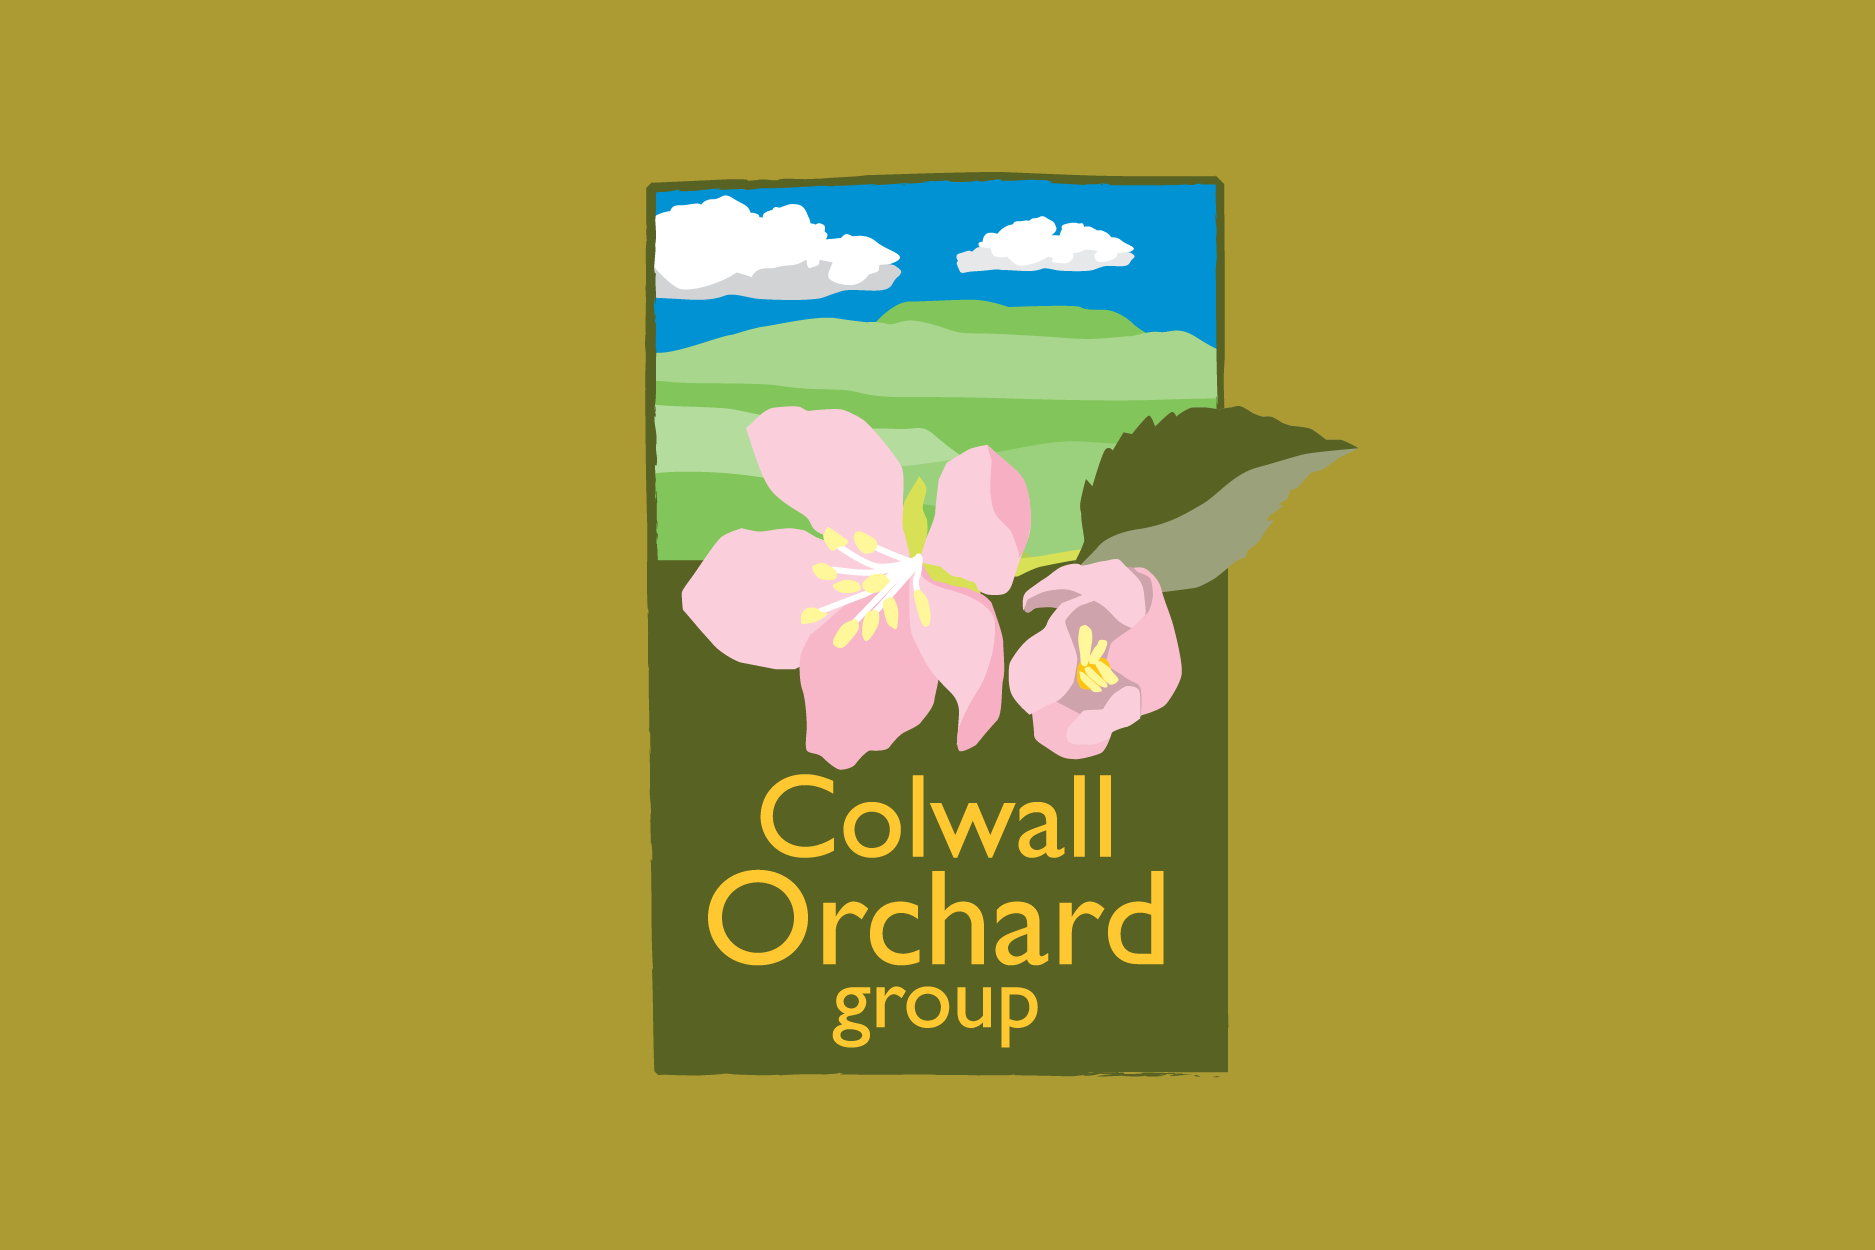 Colwall Orchard Group Branding